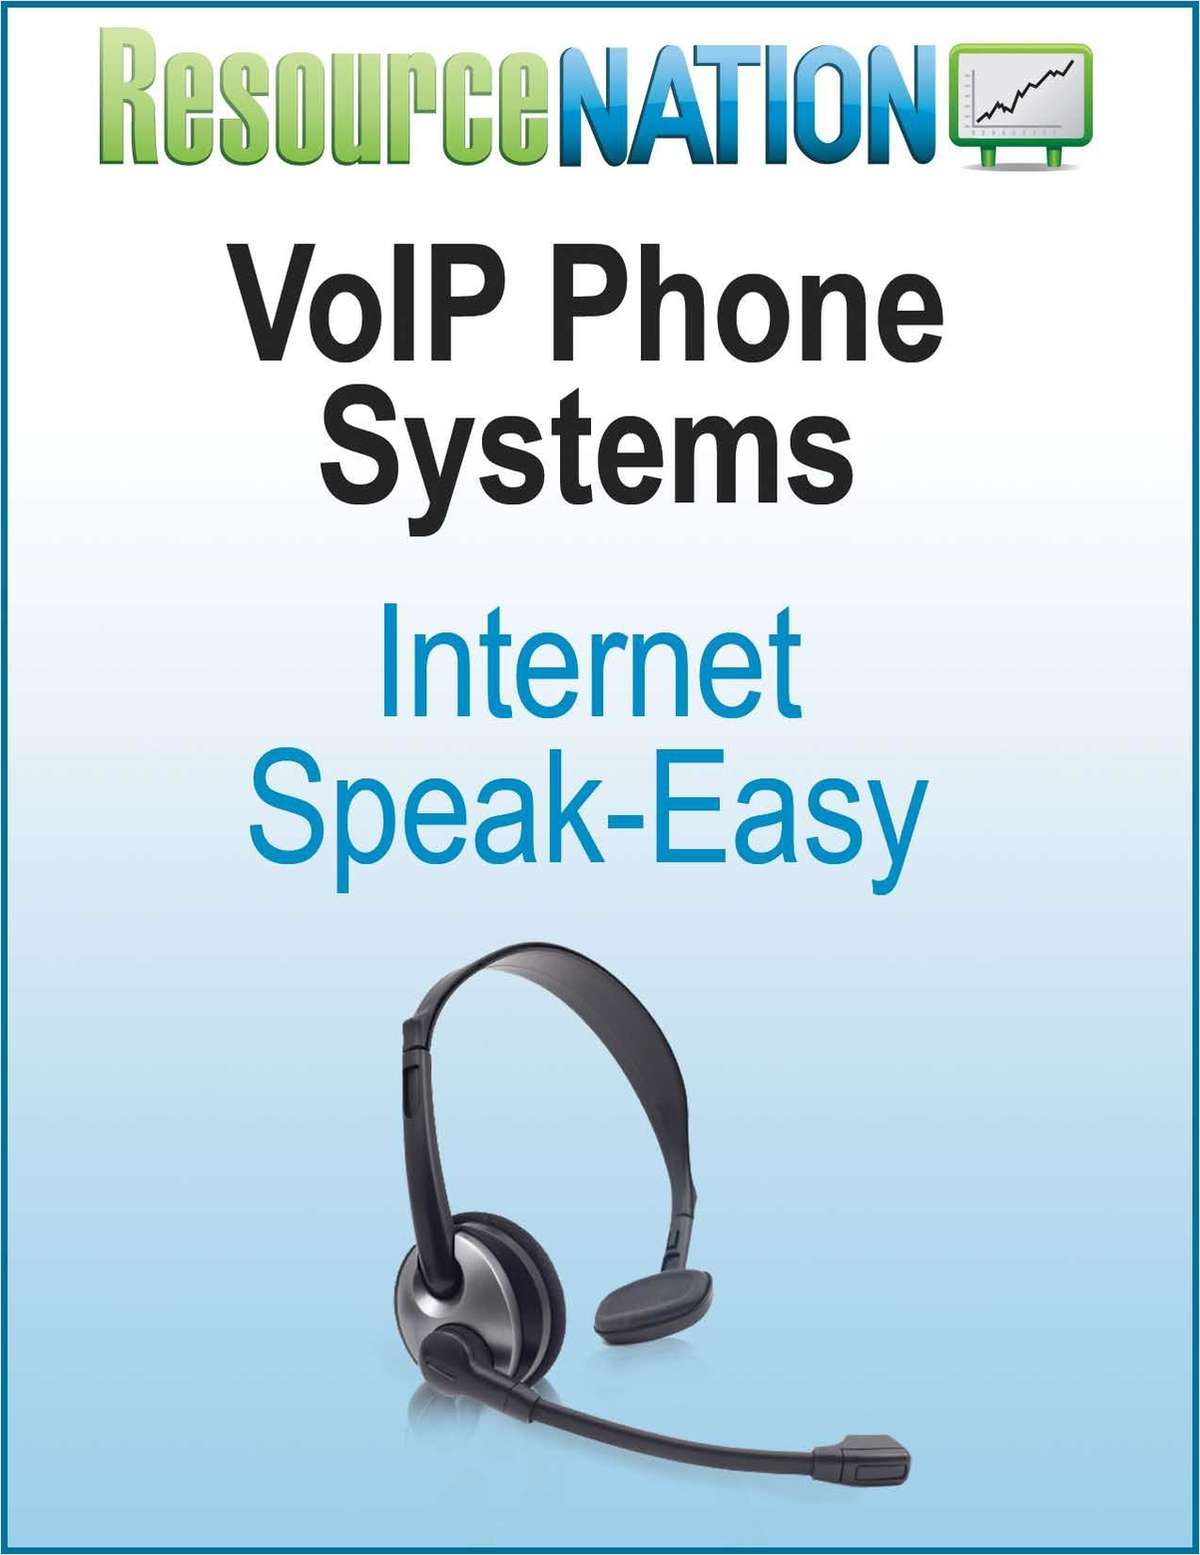 Proven Methods for Businesses to Save with VoIP Phone Systems